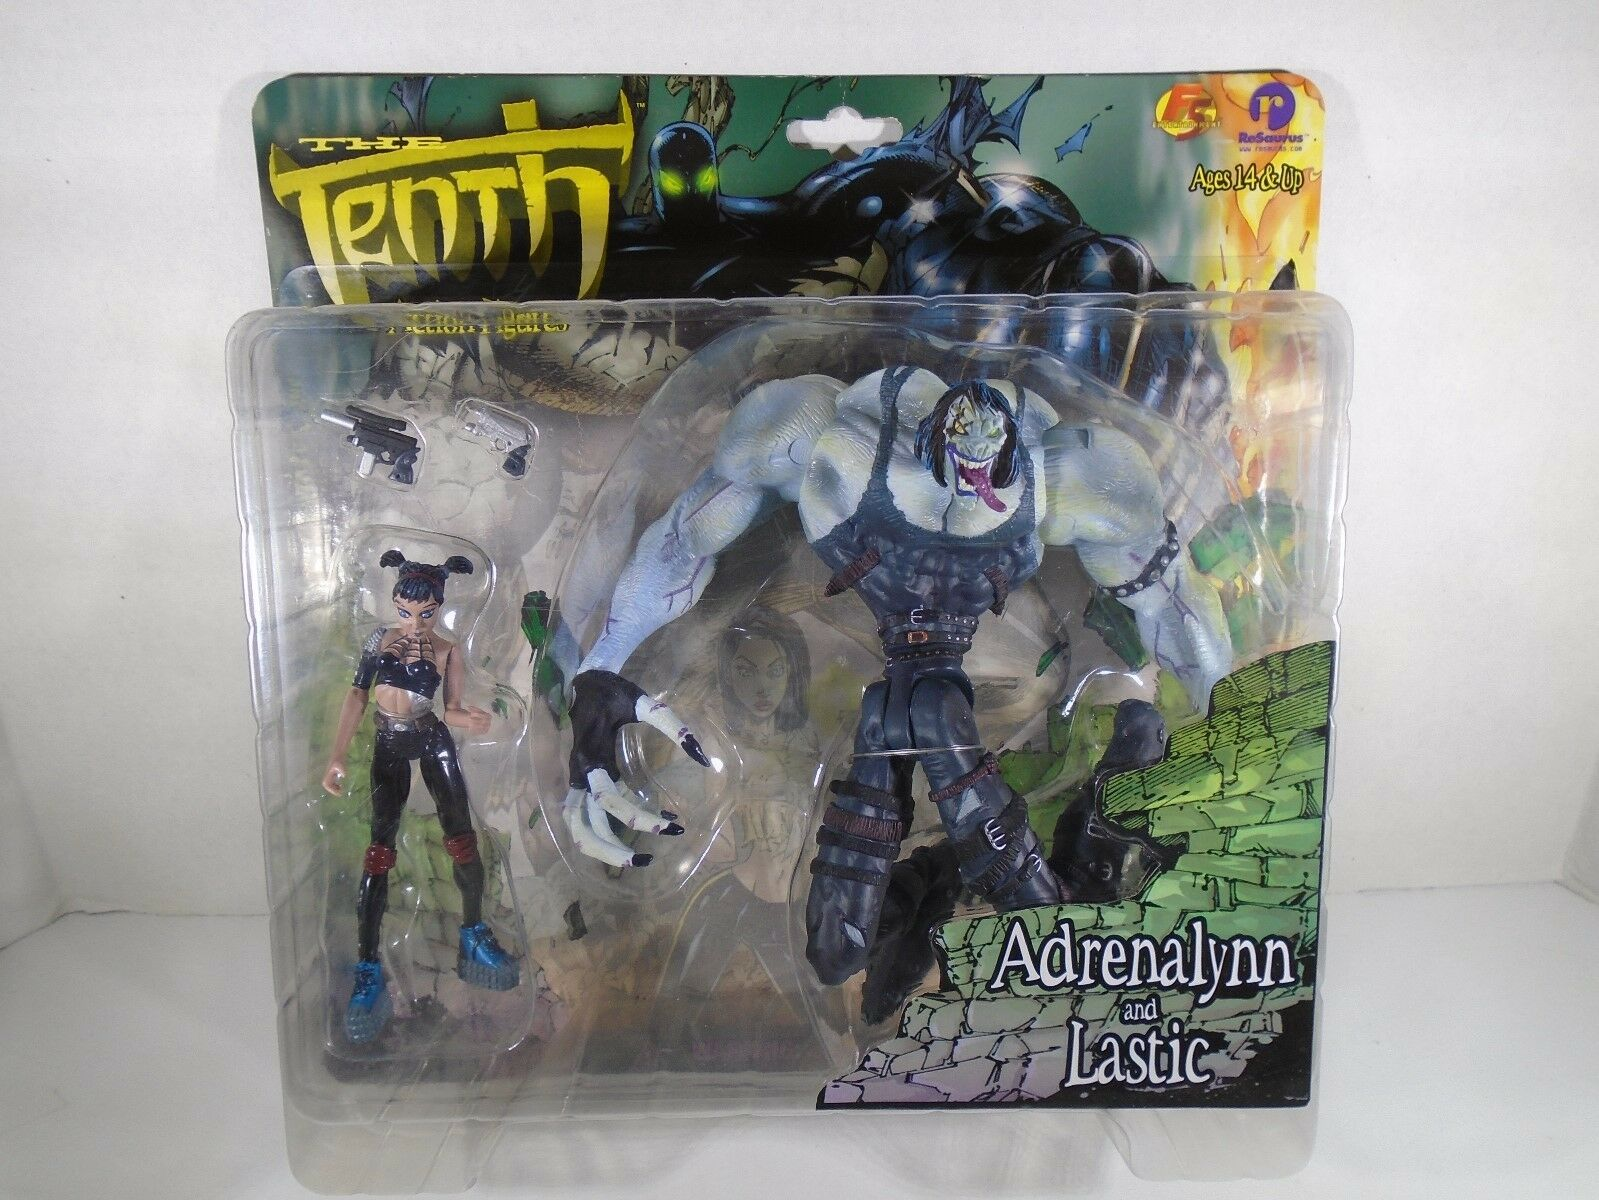 1999 RESAURUS--THE TENTH--ADRENALYNN AND LASTIC FIGURES (NEW)